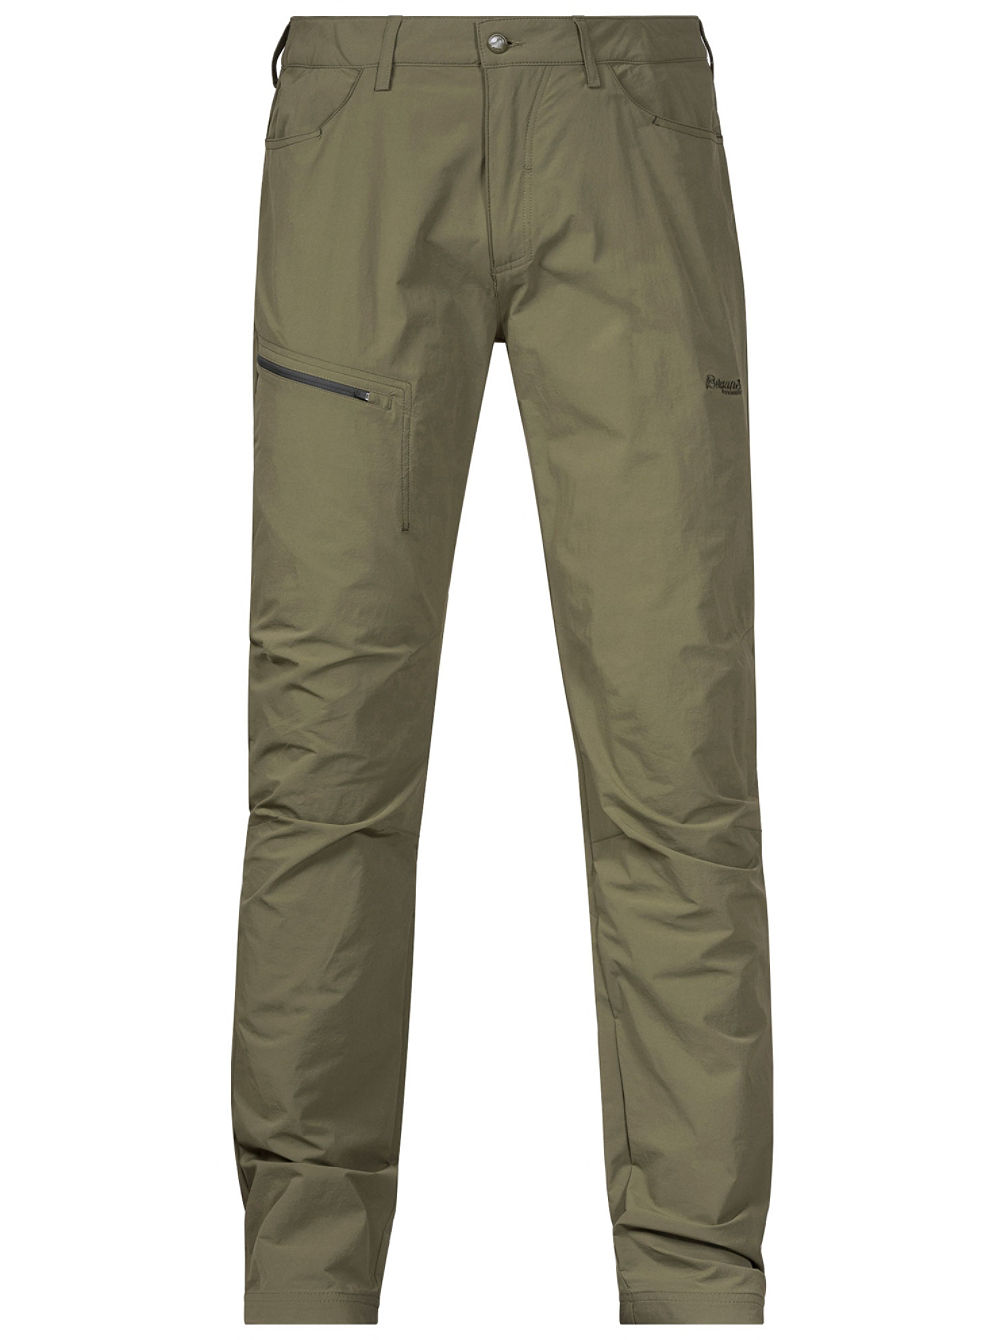 Moa Outdoor Pants